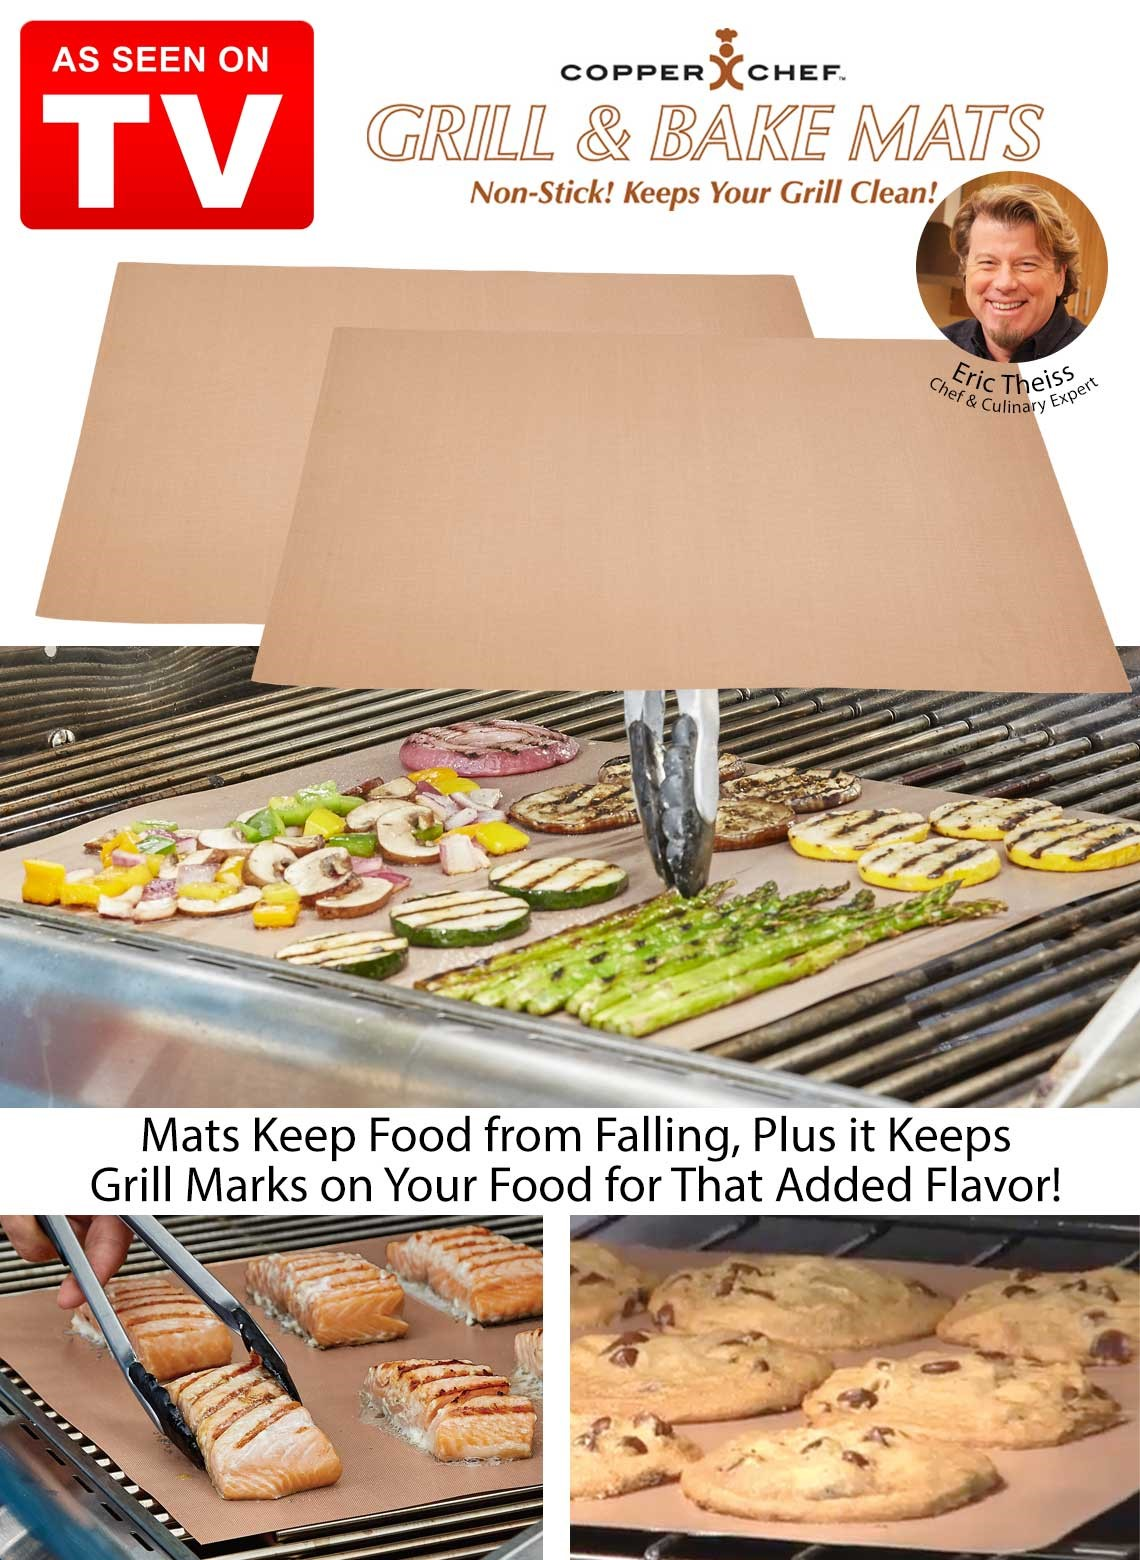 Set 2 X Copper Chef Non Stick BBQ Grill Bake Mat Nonstick